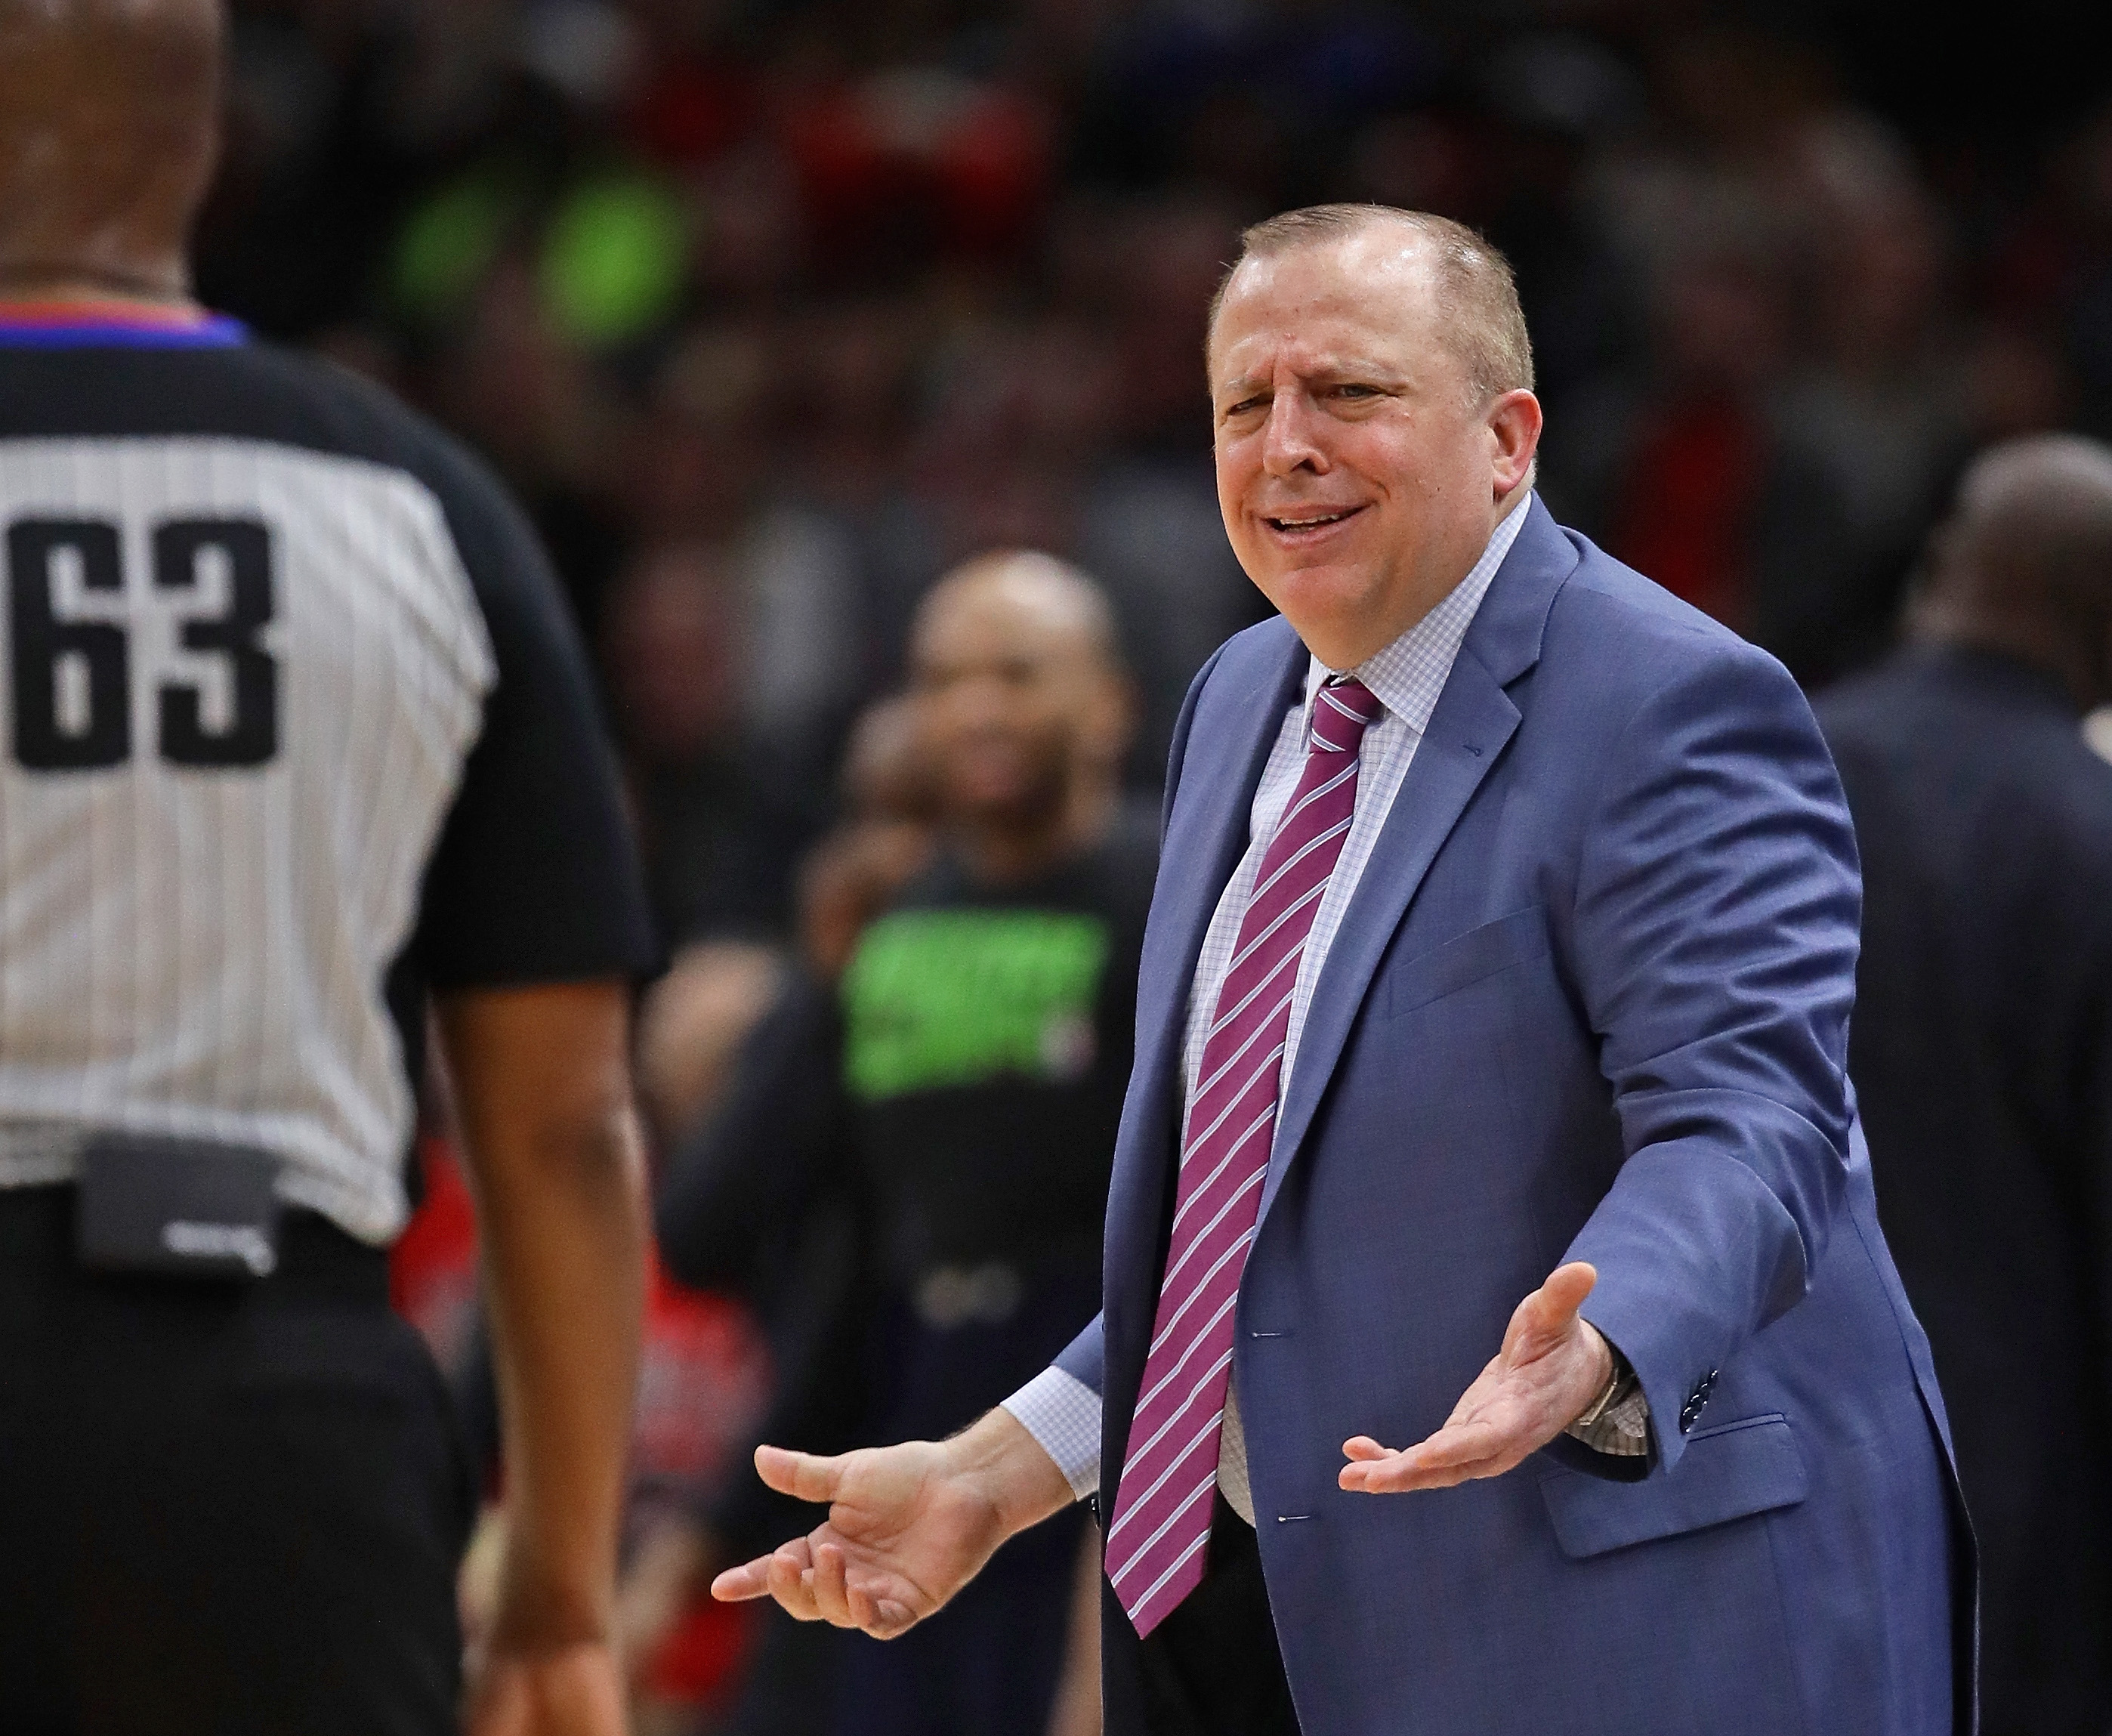 The Knicks have hired Tom Thibodeau as their head coach. He had a 255-139 record with the Bulls.